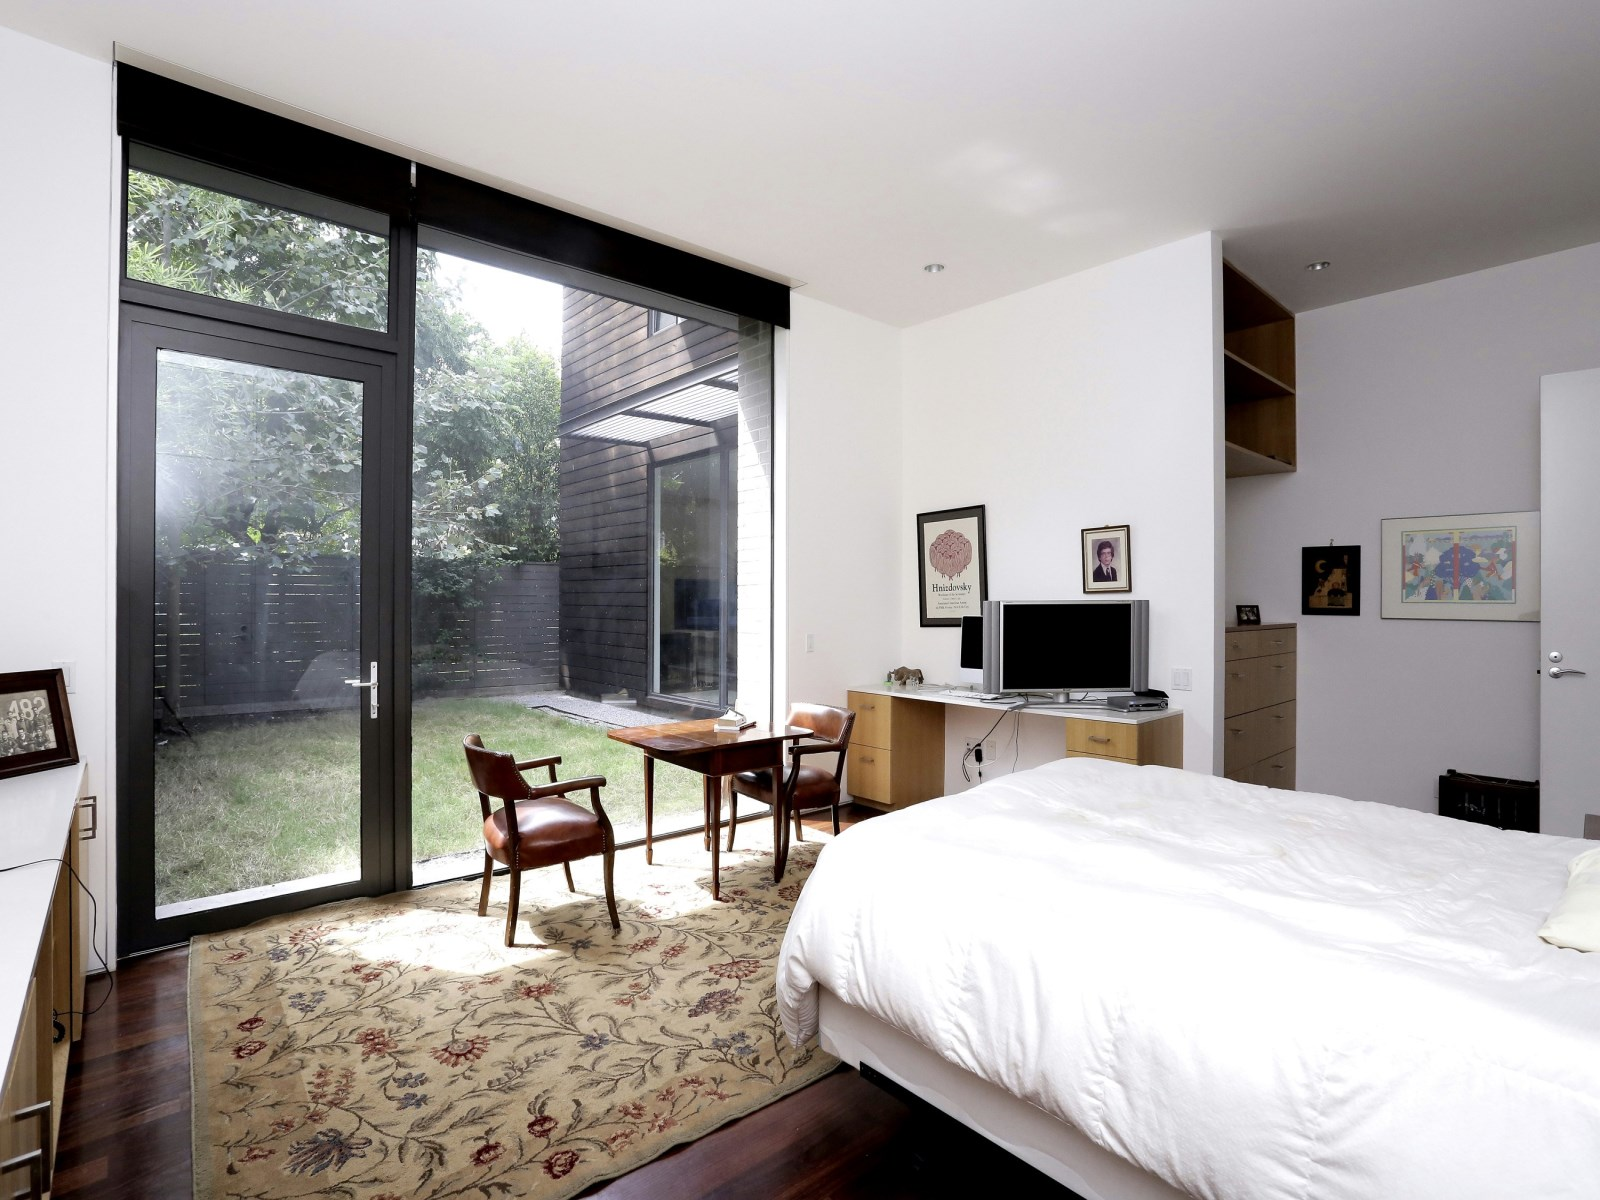 Comfortable Guest Bedroom Ideas - A home with formidable architecture and a light interior